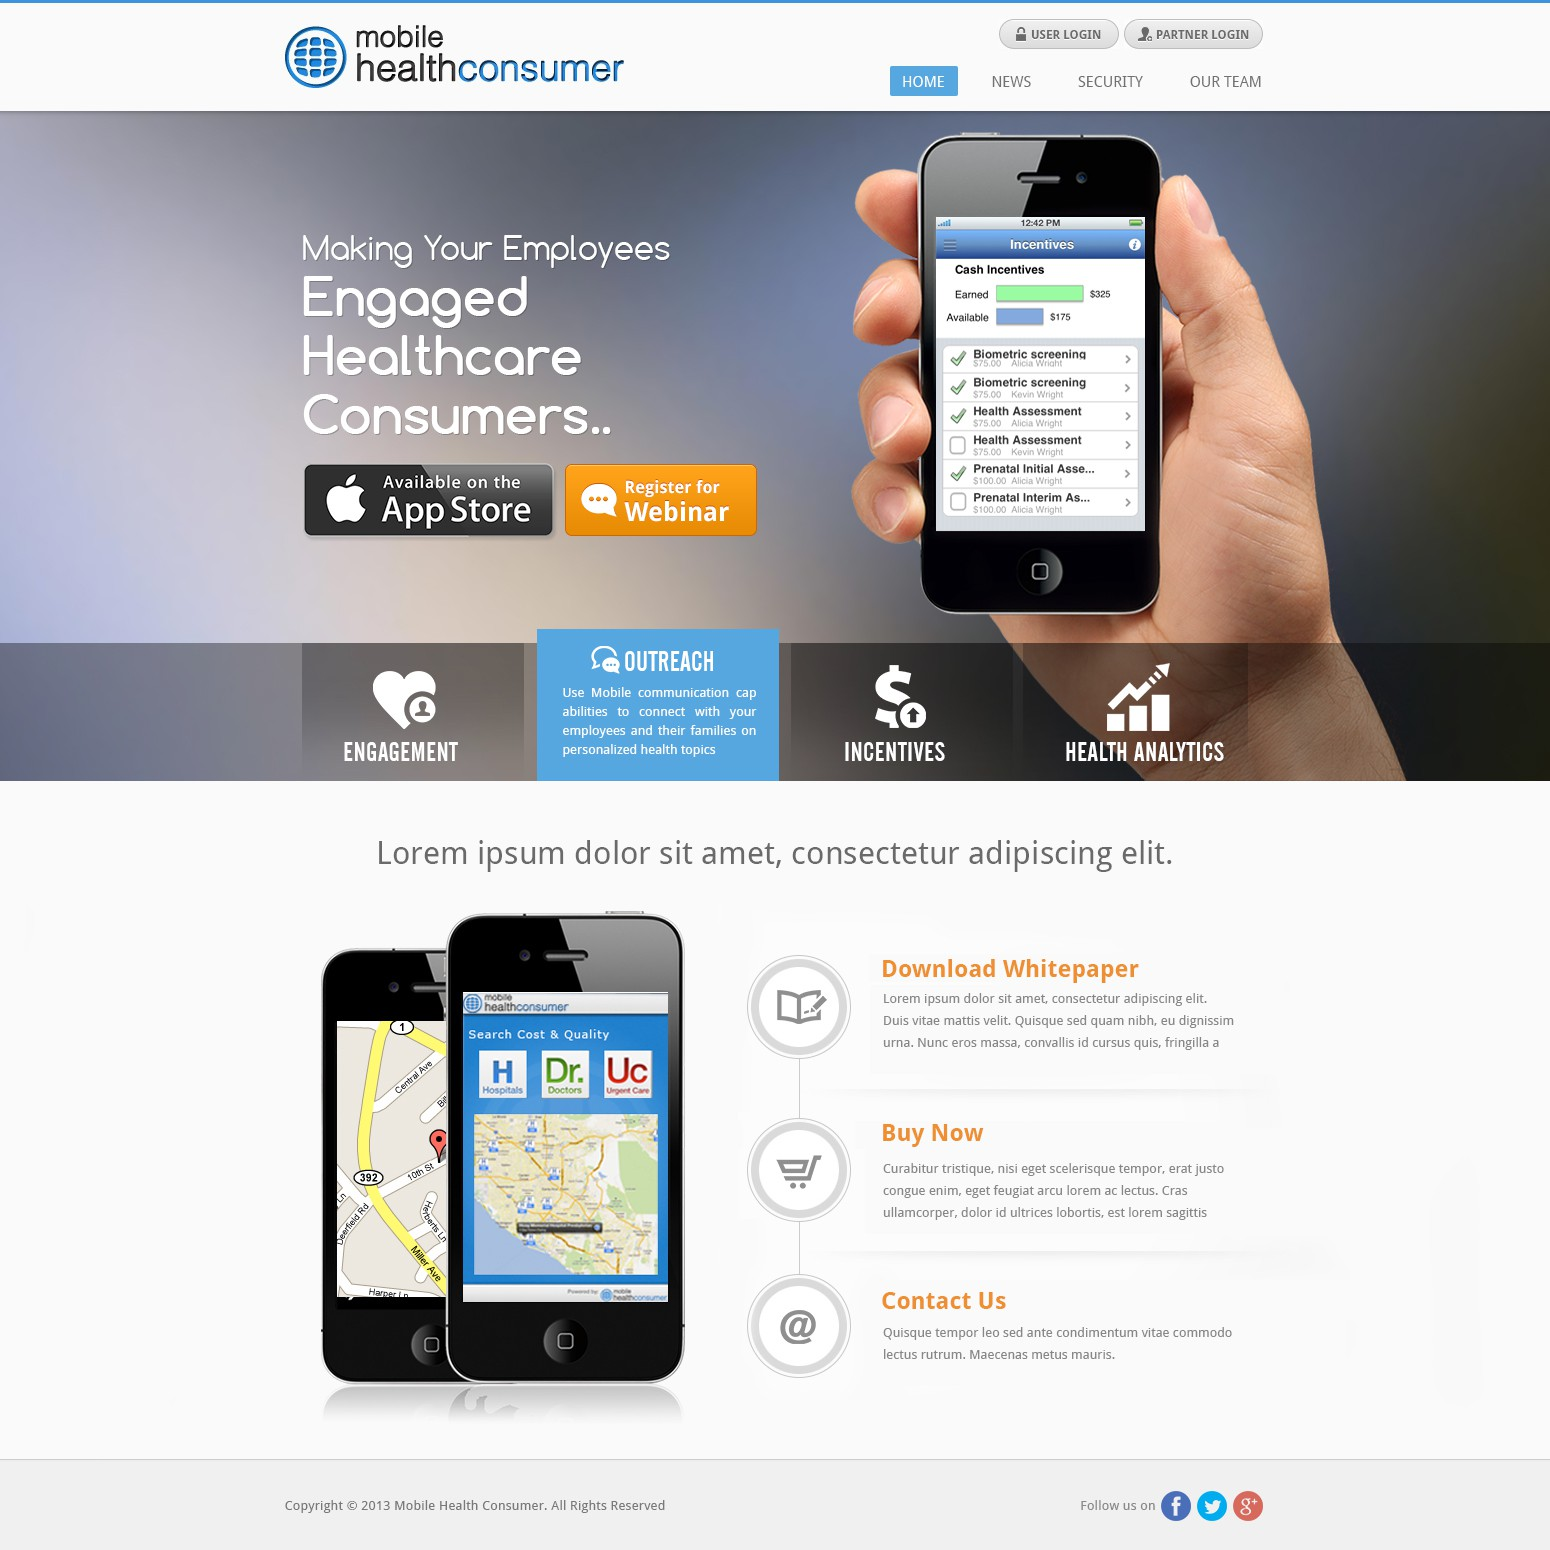 Mobile Health Consumer needs a new website design